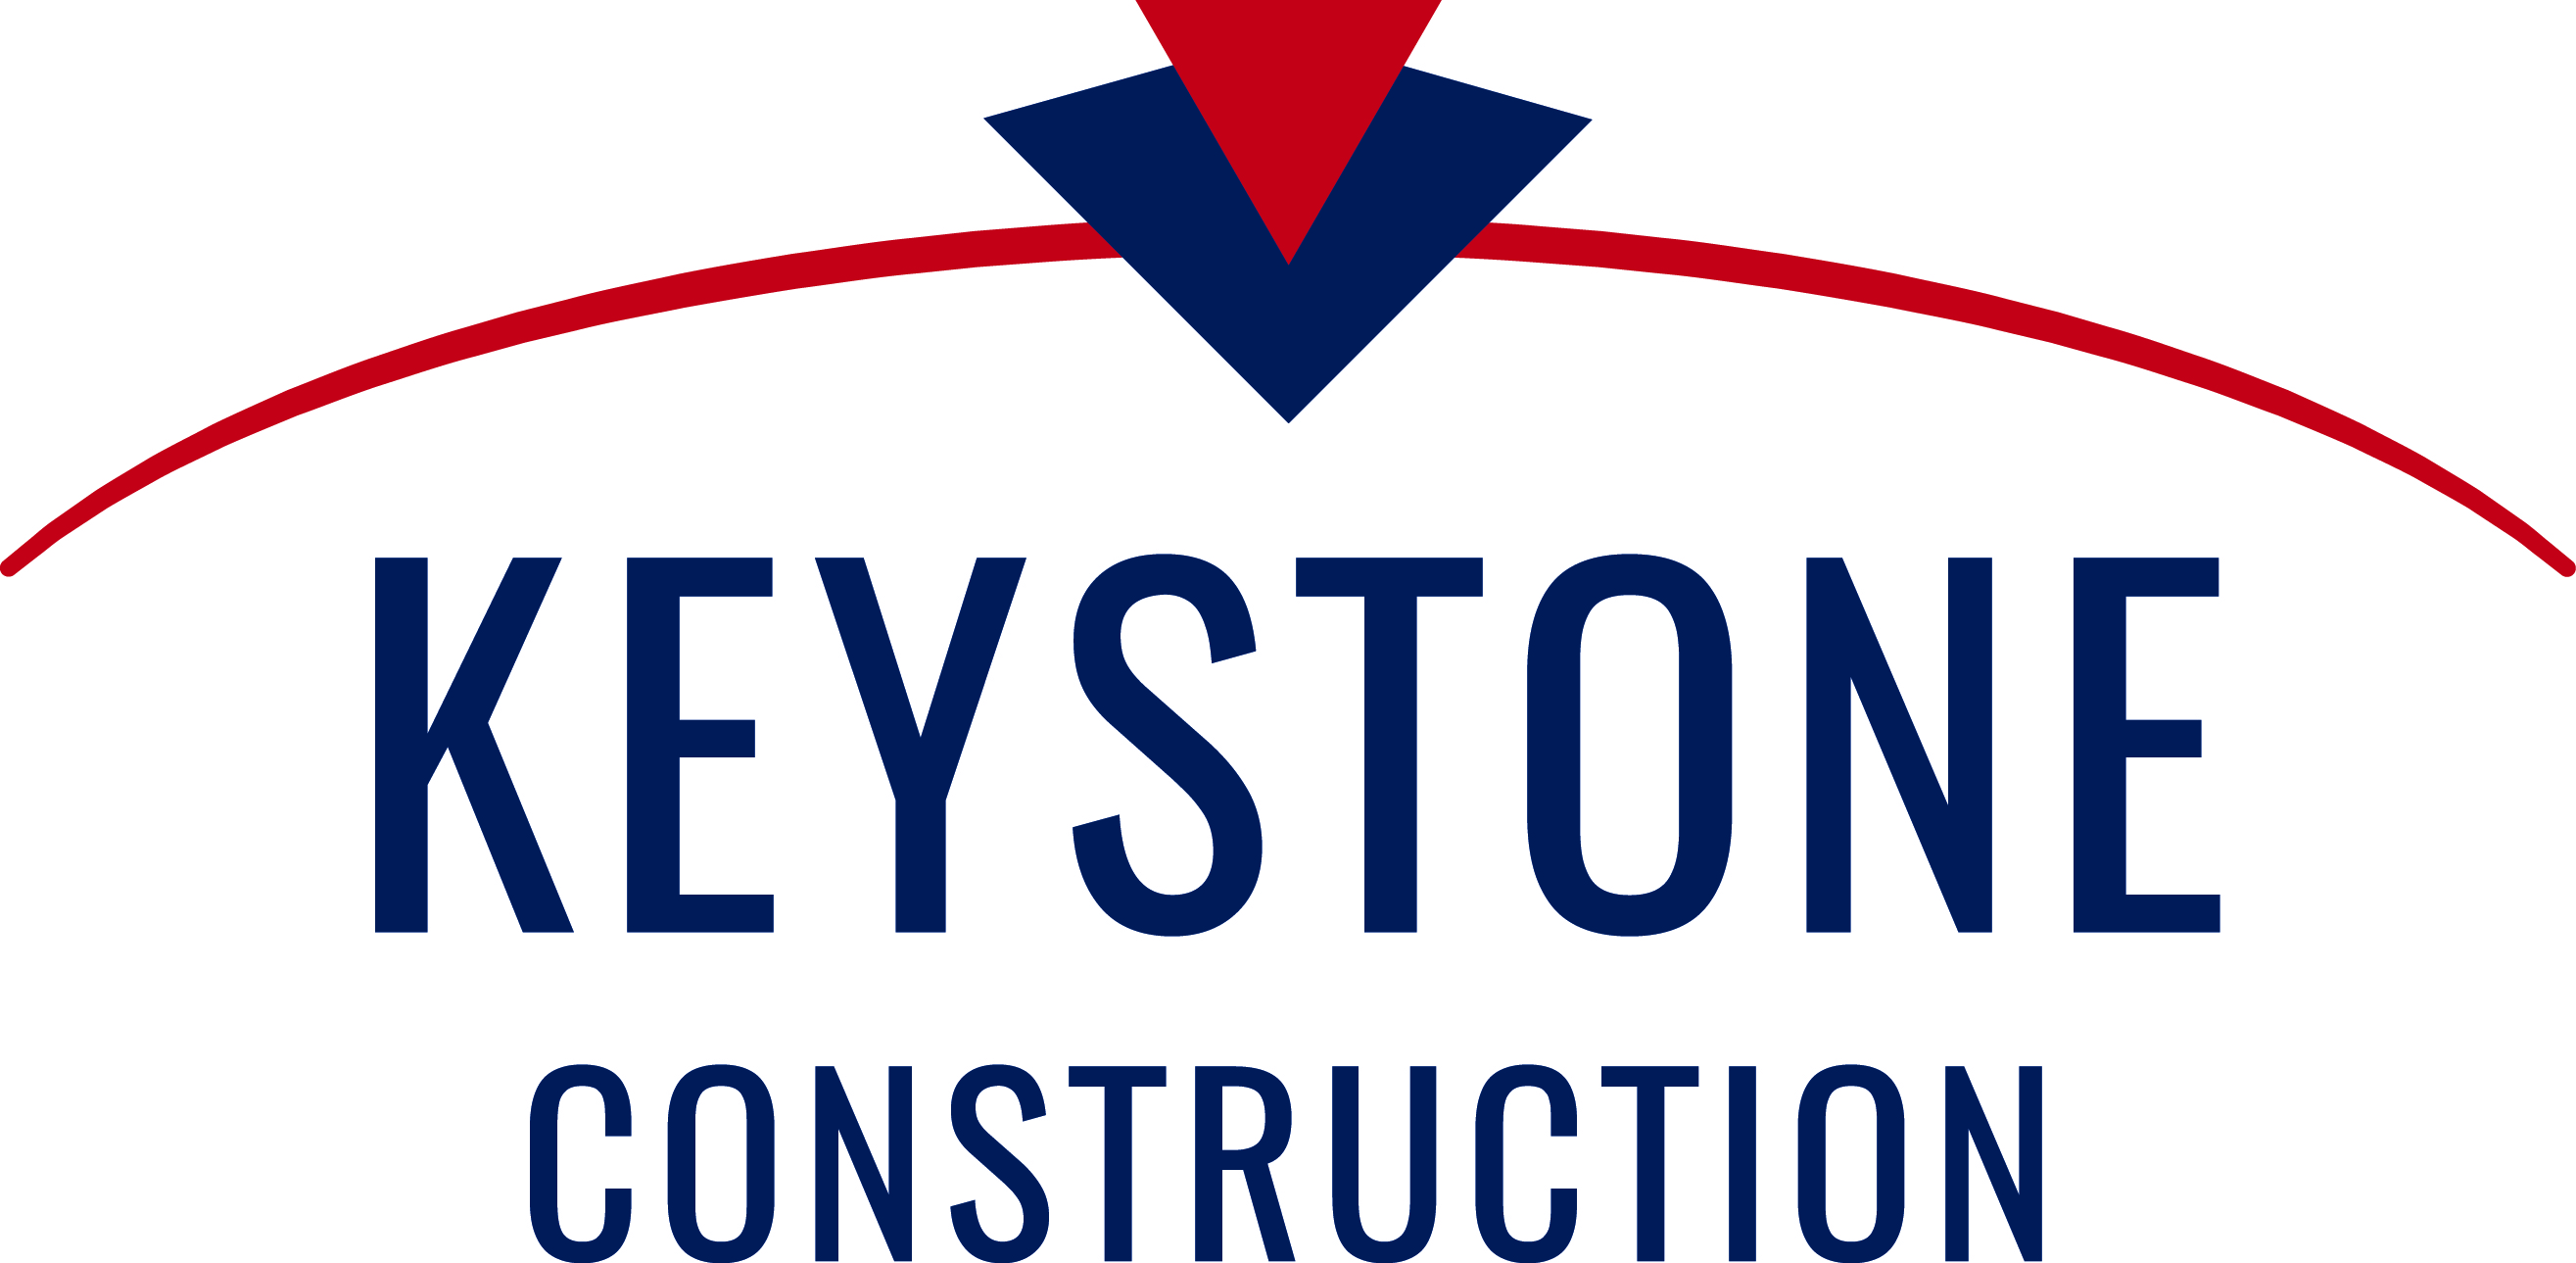 Keystone Construction Company, LLC